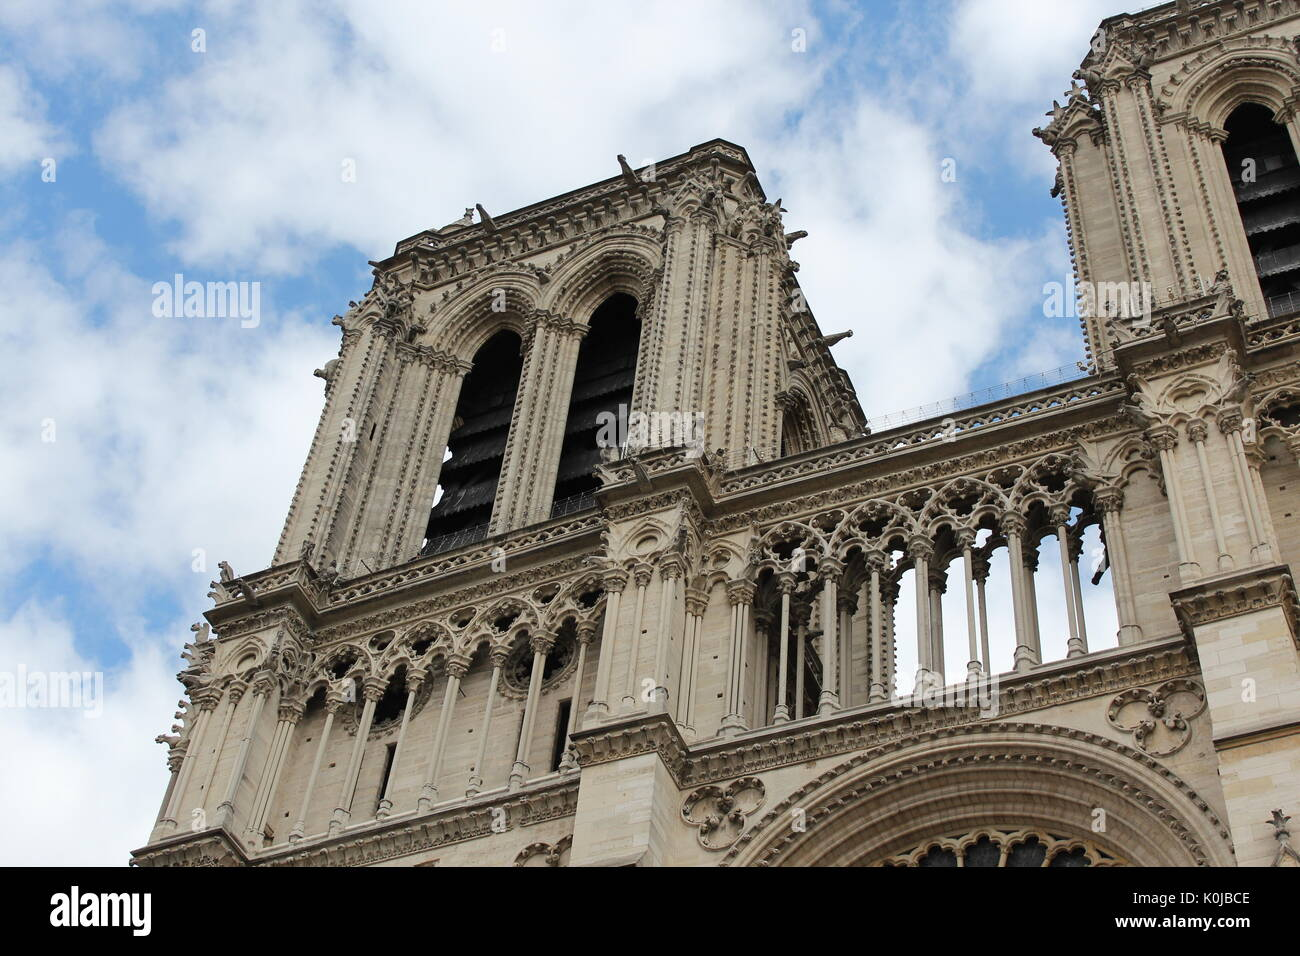 Notre Dame Cathedral taken from below on 2015, Paris - Stock Image